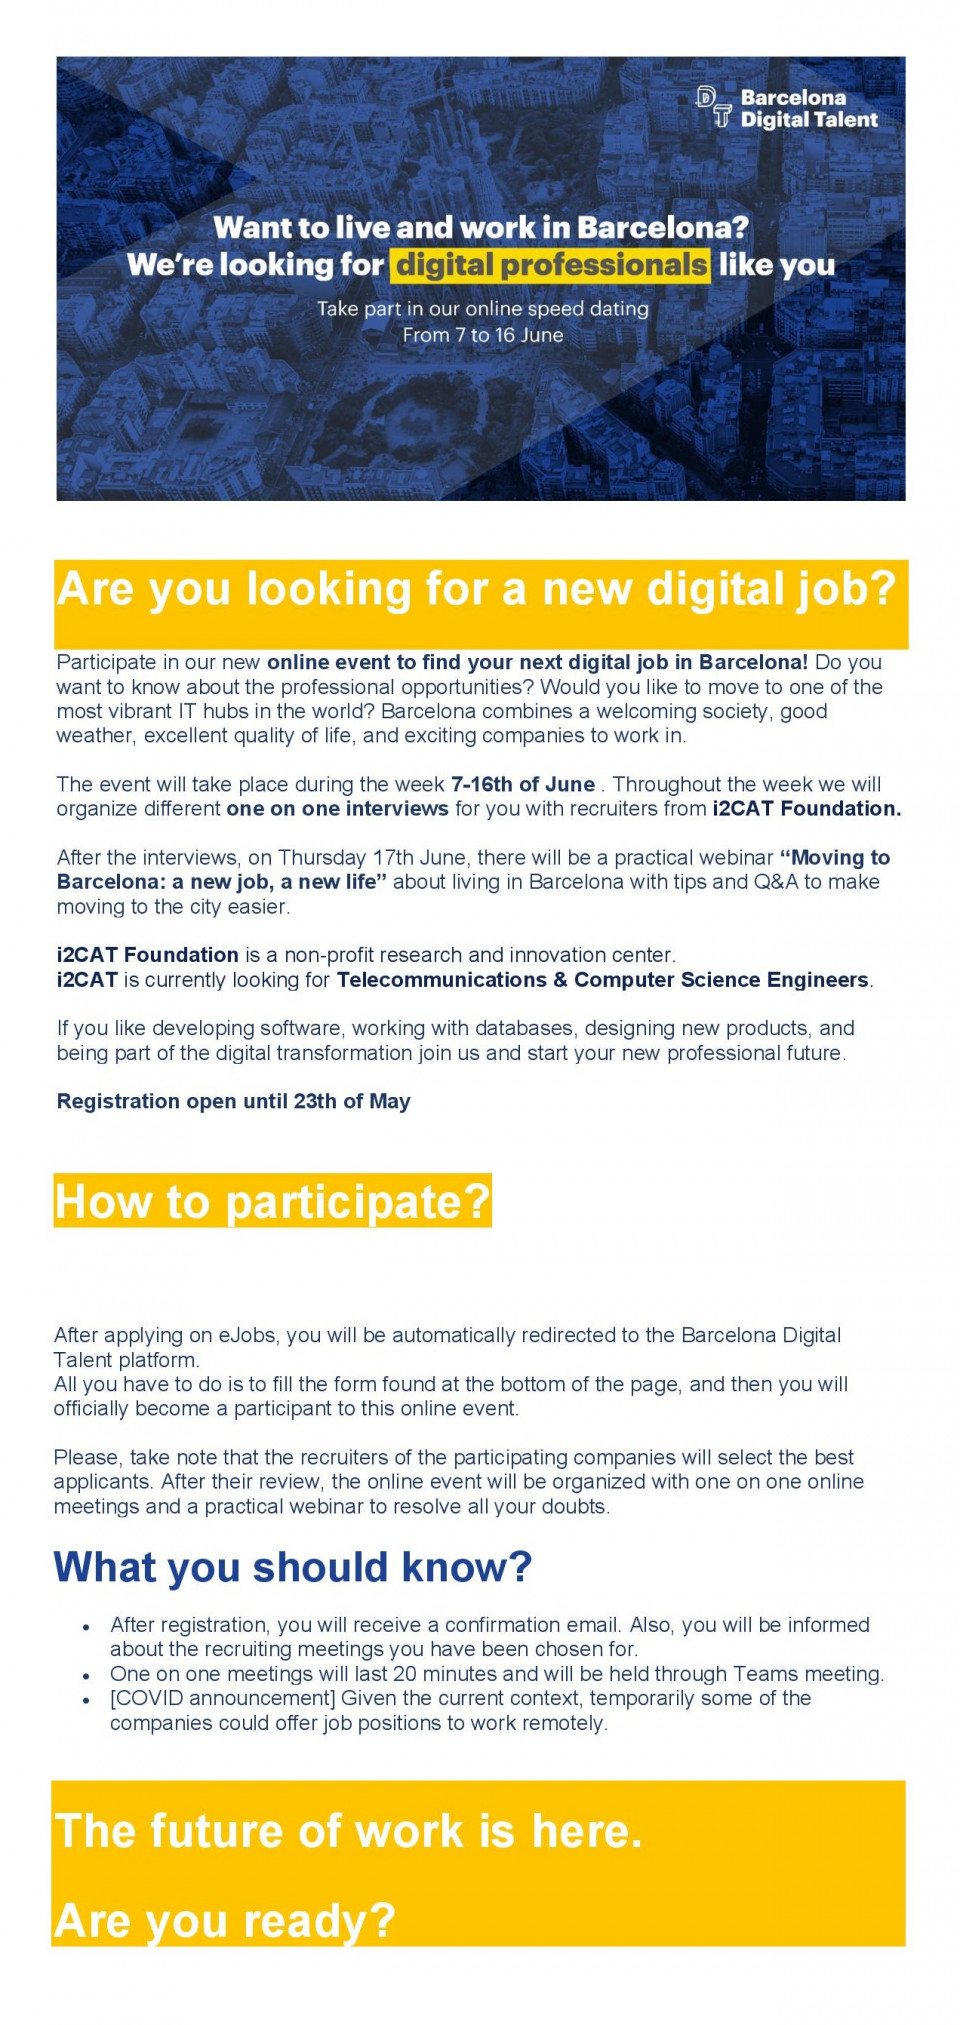 """[A picture containing graphical user interface Description automatically generated]   Are you looking for a new digital job? Participate in our new online event to find your next digital job in Barcelona! Do you want to know about the professional opportunities? Would you like to move to one of the most vibrant IT hubs in the world? Barcelona combines a welcoming society, good weather, excellent quality of life, and exciting companies to work in.  The event will take place during the week 7-16th of June . Throughout the week we will organize different one on one interviews for you with recruiters from i2CAT Foundation.   After the interviews, on Thursday 17th June, there will be a practical webinar """"Moving to Barcelona: a new job, a new life"""" about living in Barcelona with tips and Q&A to make moving to the city easier.  i2CAT Foundation is a non-profit research and innovation center. i2CAT is currently looking for Telecommunications & Computer Science Engineers.   If you like developing software, working with databases, designing new products, and being part of the digital transformation join us and start your new professional future.  Registration open until 23th of May   How to participate?       After applying on eJobs, you will be automatically redirected to the Barcelona Digital Talent platform. All you have to do is to fill the form found at the bottom of the page, and then you will officially become a participant to this online event.   Please, take note that the recruiters of the participating companies will select the best applicants. After their review, the online event will be organized with one on one online meetings and a practical webinar to resolve all your doubts.   What you should know? After registration, you will receive a confirmation email. Also, you will be informed about the recruiting meetings you have been chosen for. One on one meetings will last 20 minutes and will be held through Teams meeting. [COVID announcement] Given the current cont"""